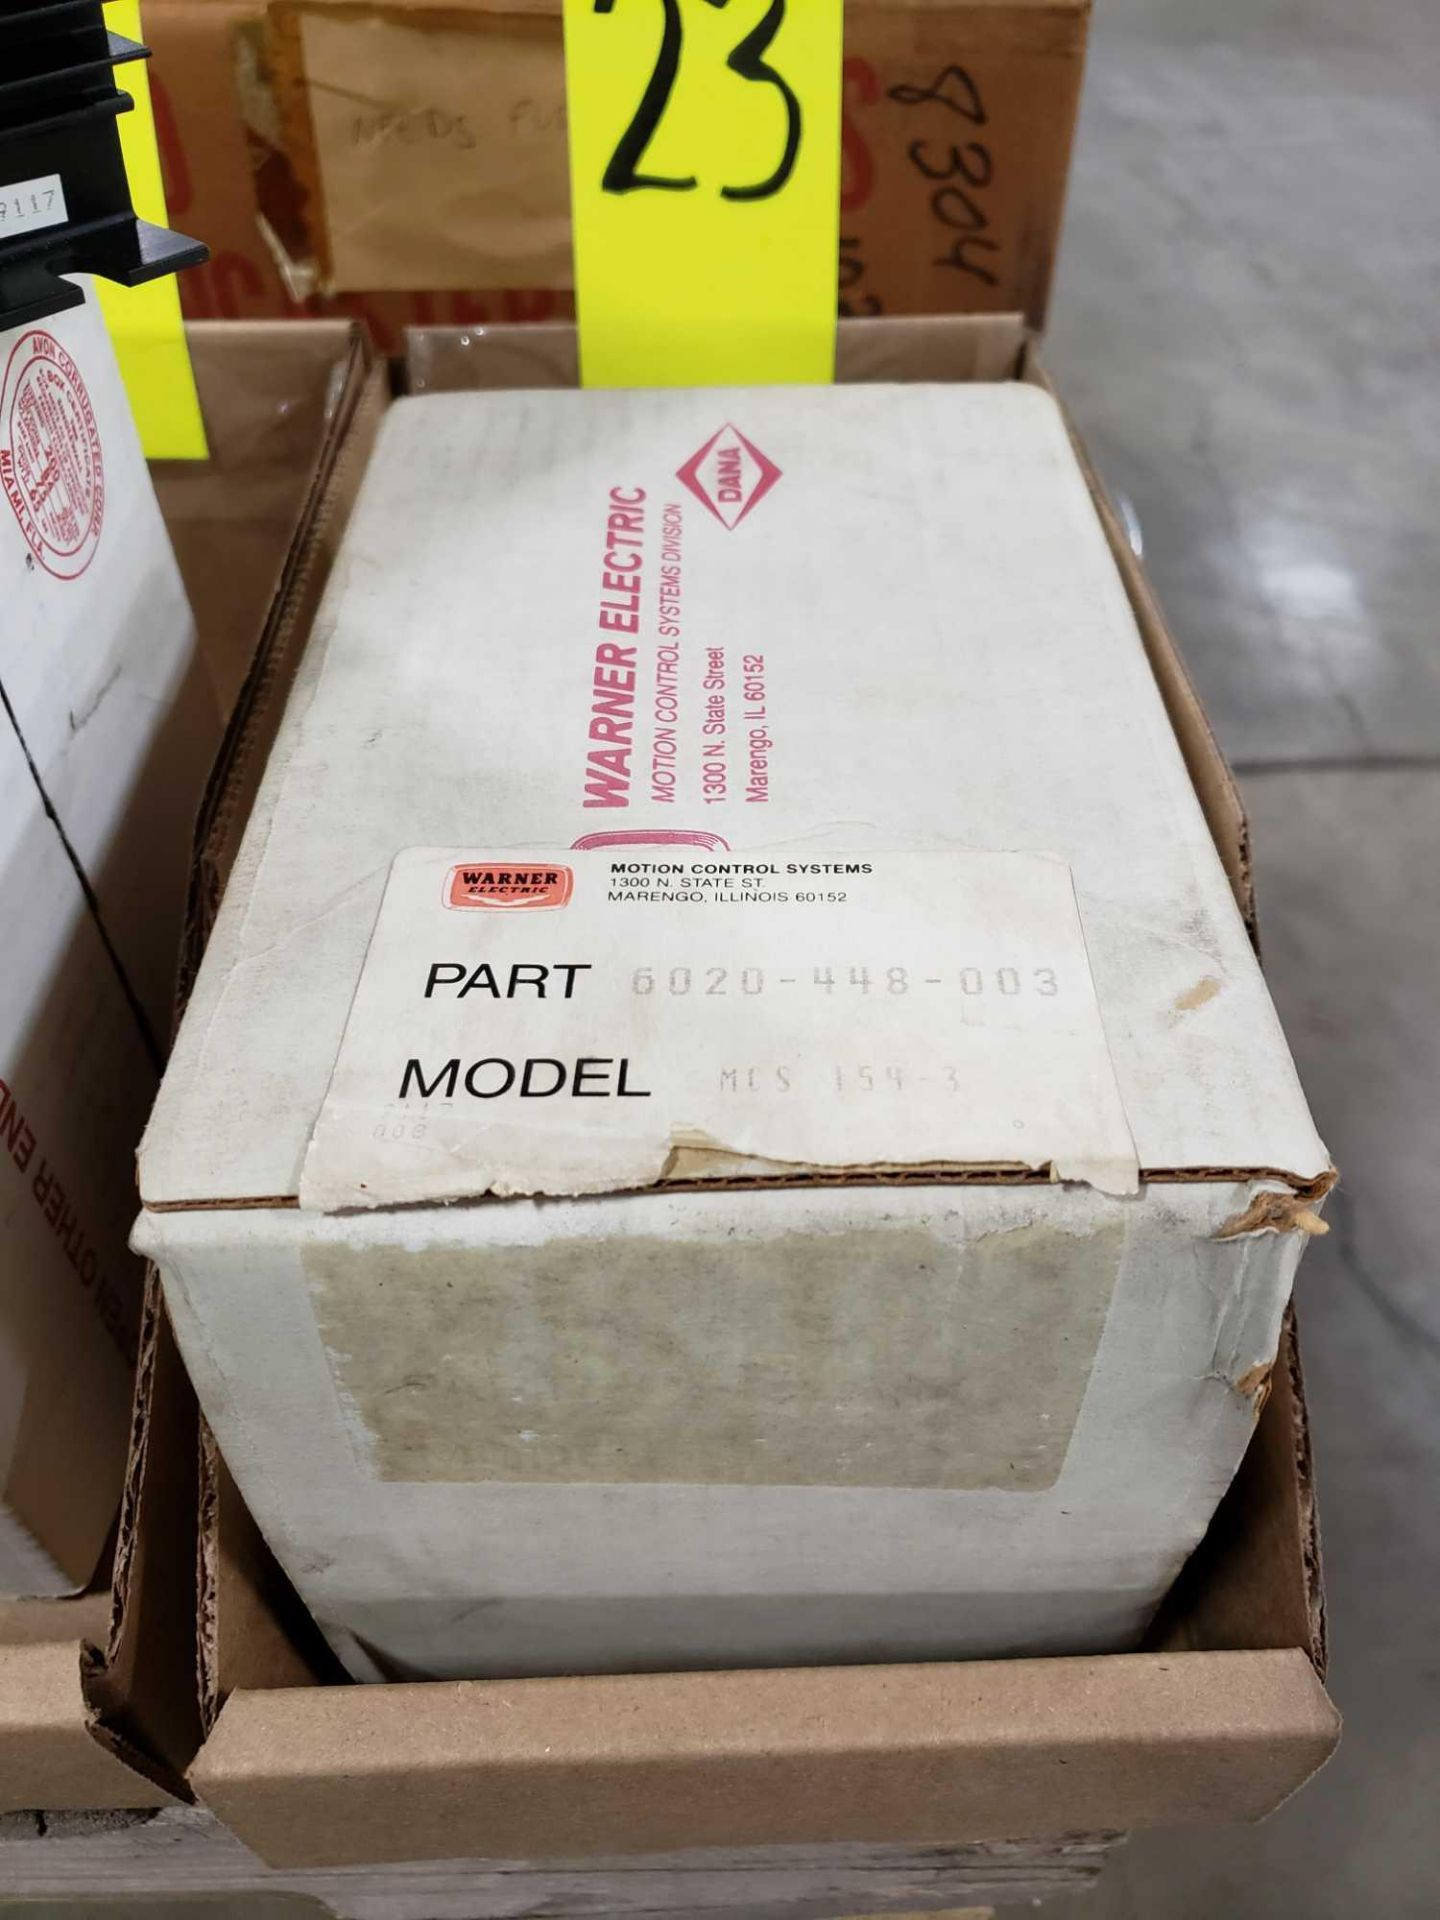 Lot 23 - Warner Electric drive model MCS-154-3, part number 6020-448-003. New in box.